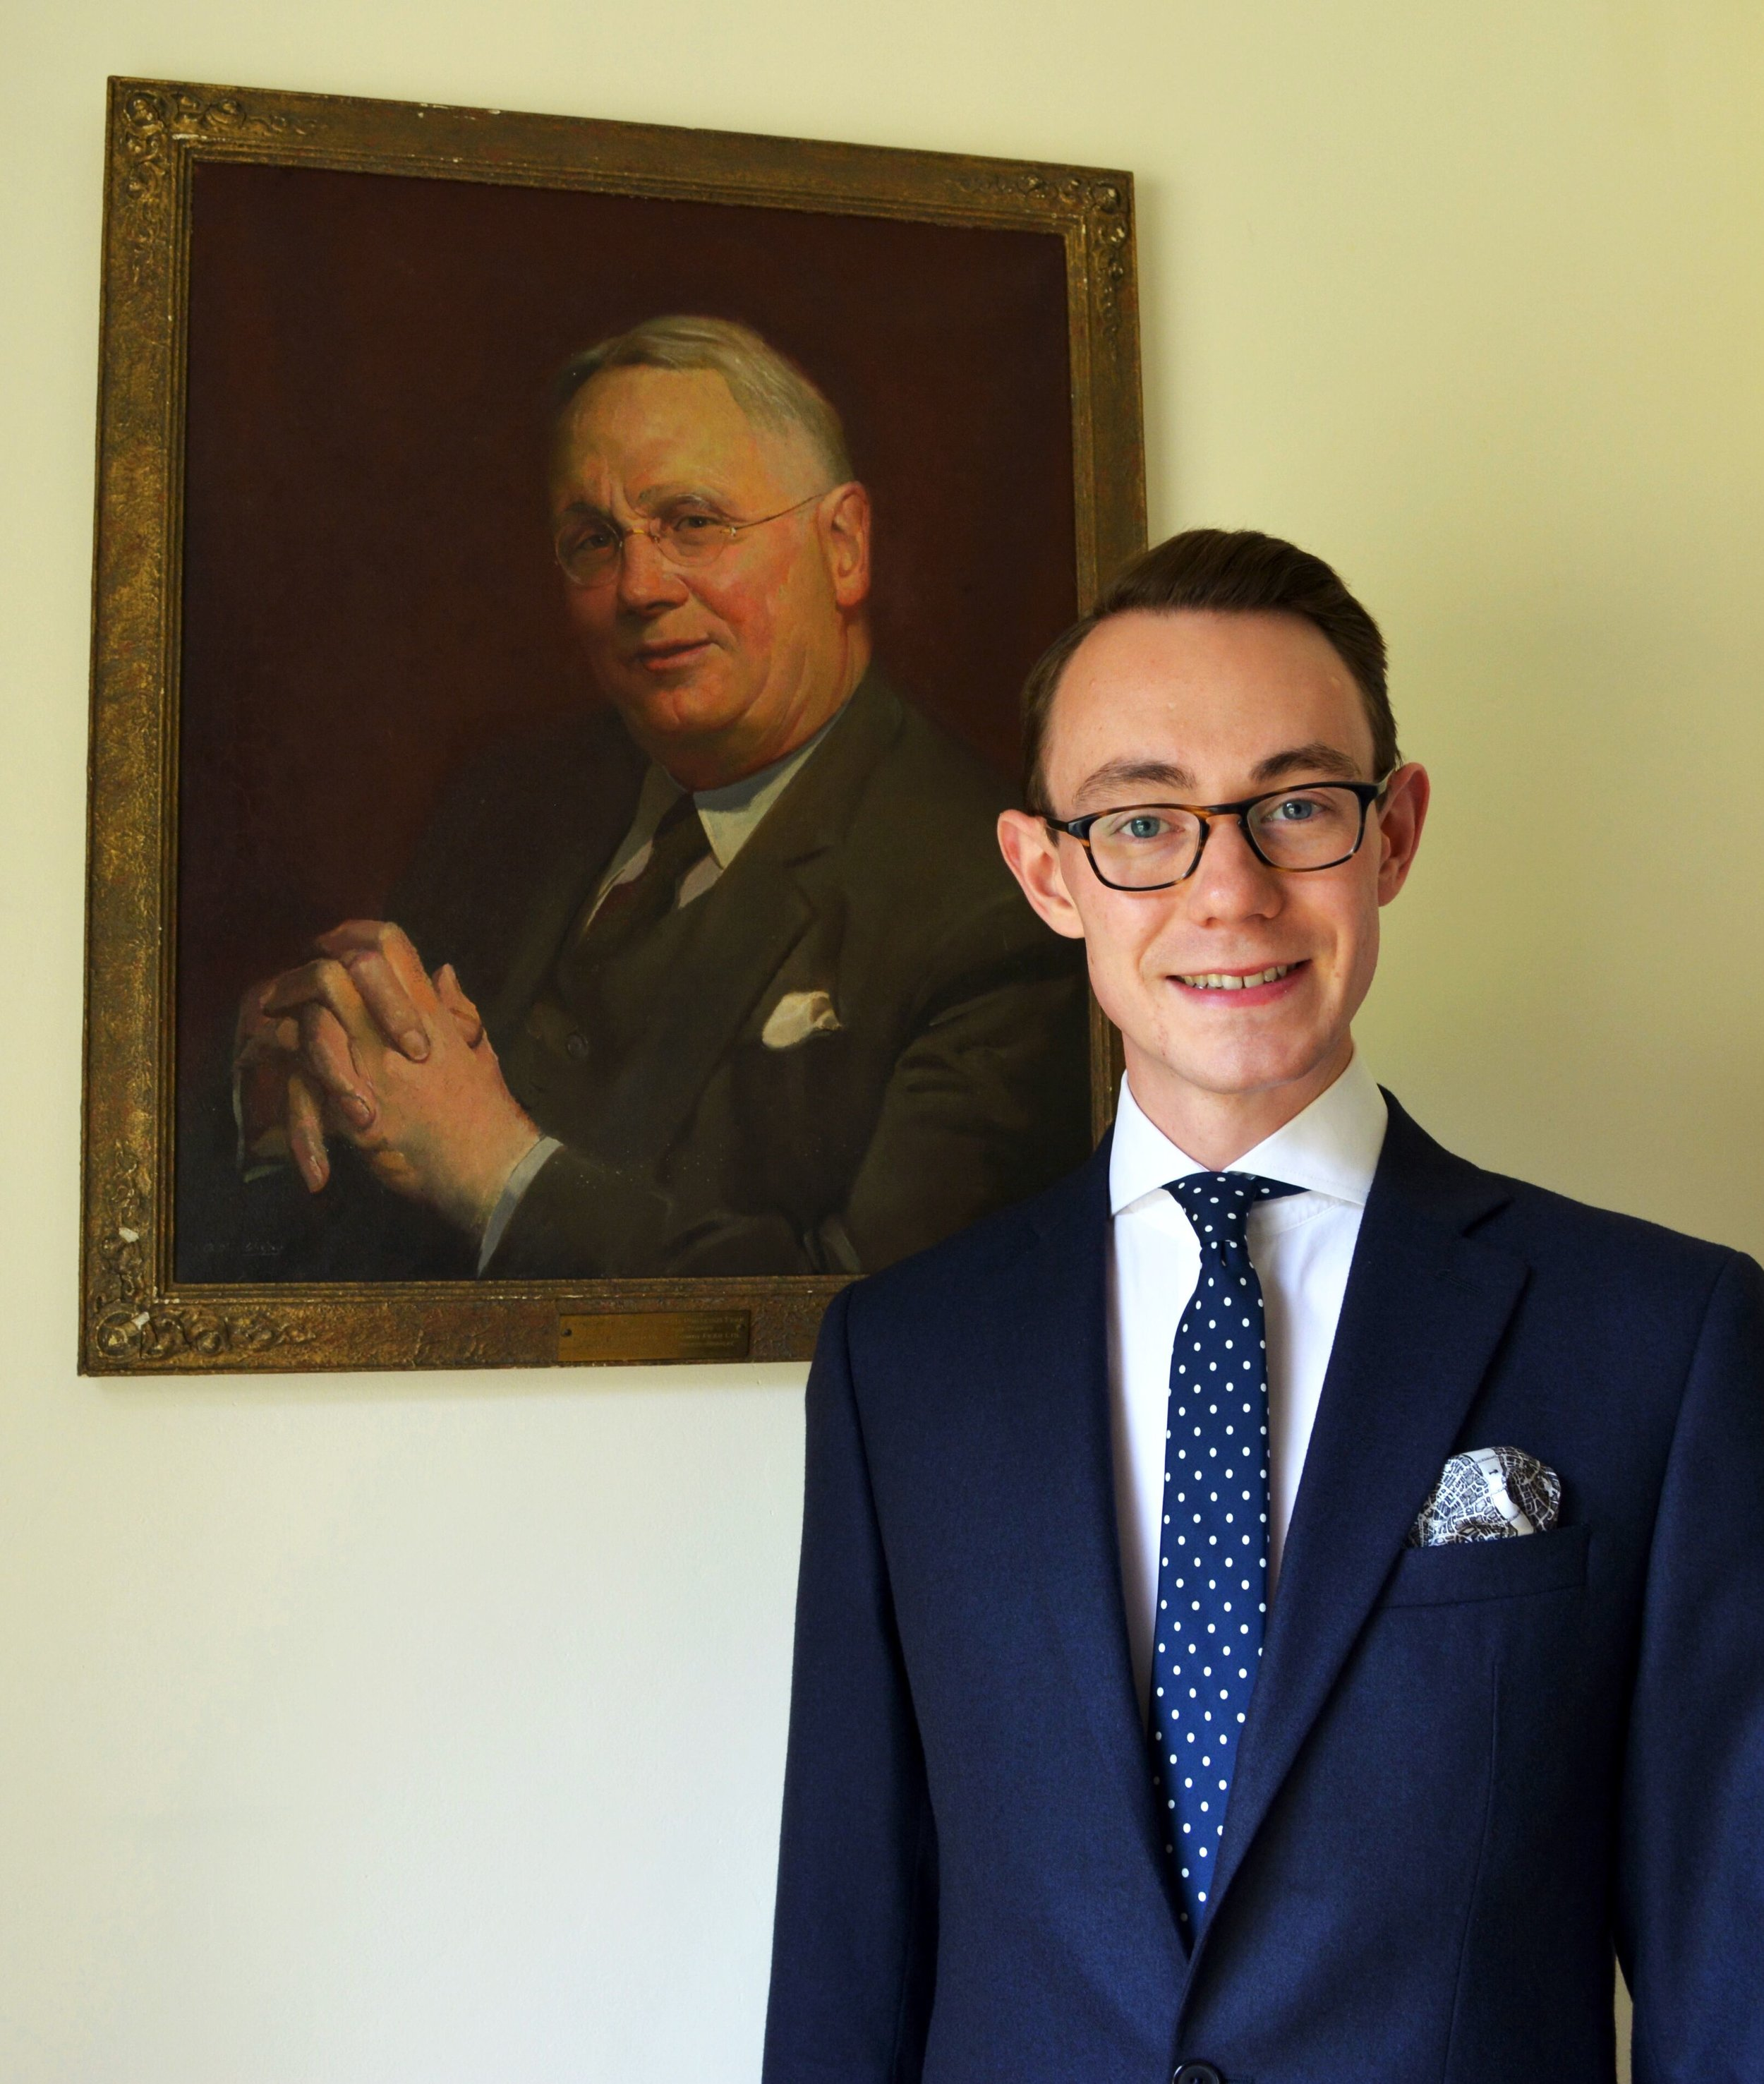 Nicholas Bowman-Scargill with painting of Great-Grandfather